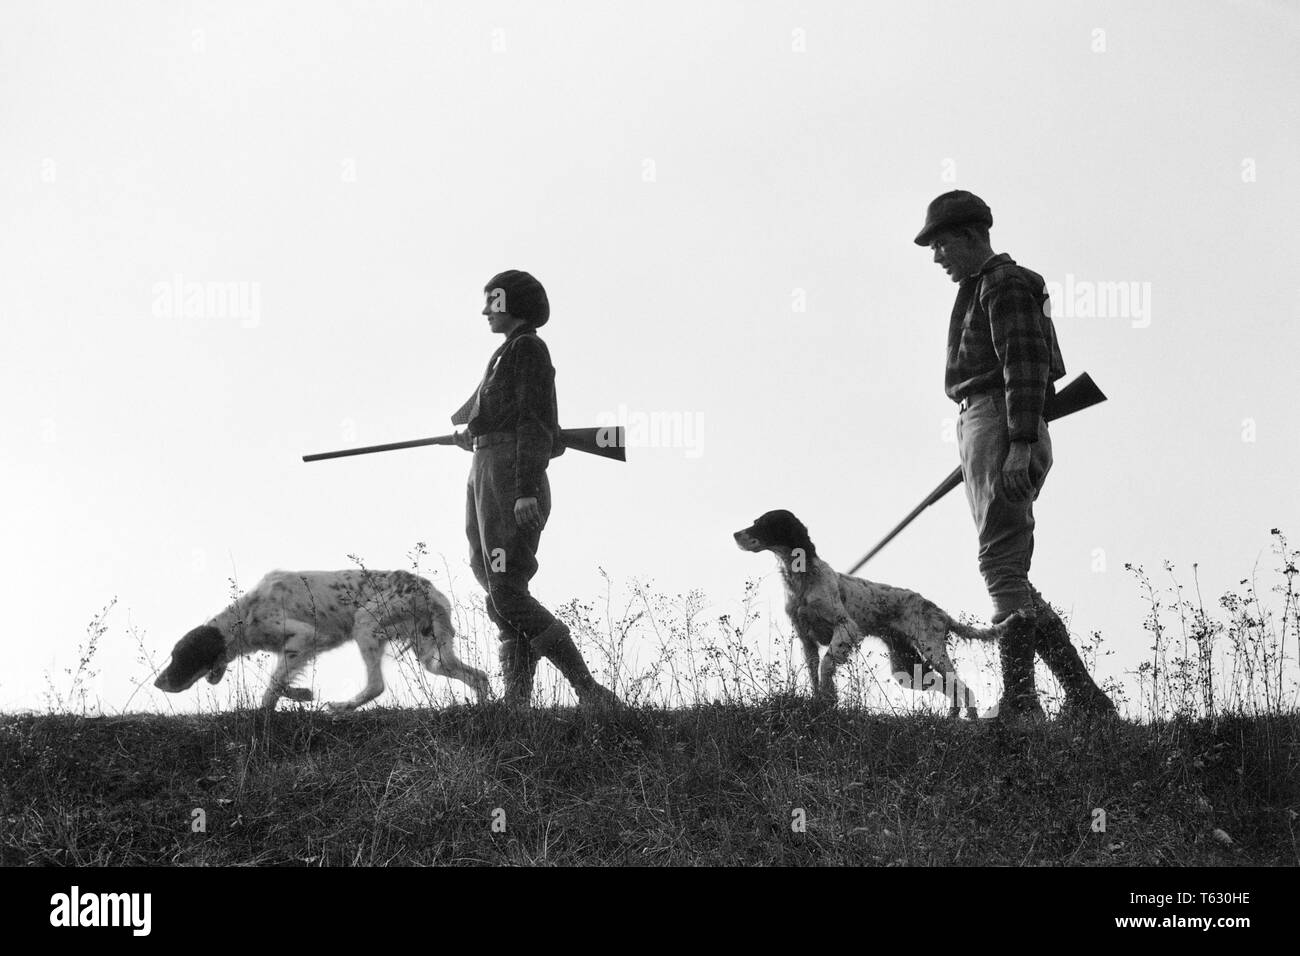 1920s 1930s ANONYMOUS SILHOUETTE MAN AND WOMAN HUNTERS CARRYING GUNS EACH WITH A HUNTING DOG  - s2541a HAR001 HARS LEISURE SILHOUETTED AND CANINES RECREATION POOCH CONNECTION ANONYMOUS CANINE COOPERATION FIREARM FIREARMS HUNTERS MAMMAL MID-ADULT MID-ADULT MAN MID-ADULT WOMAN TOGETHERNESS BLACK AND WHITE HAR001 OLD FASHIONED - Stock Image